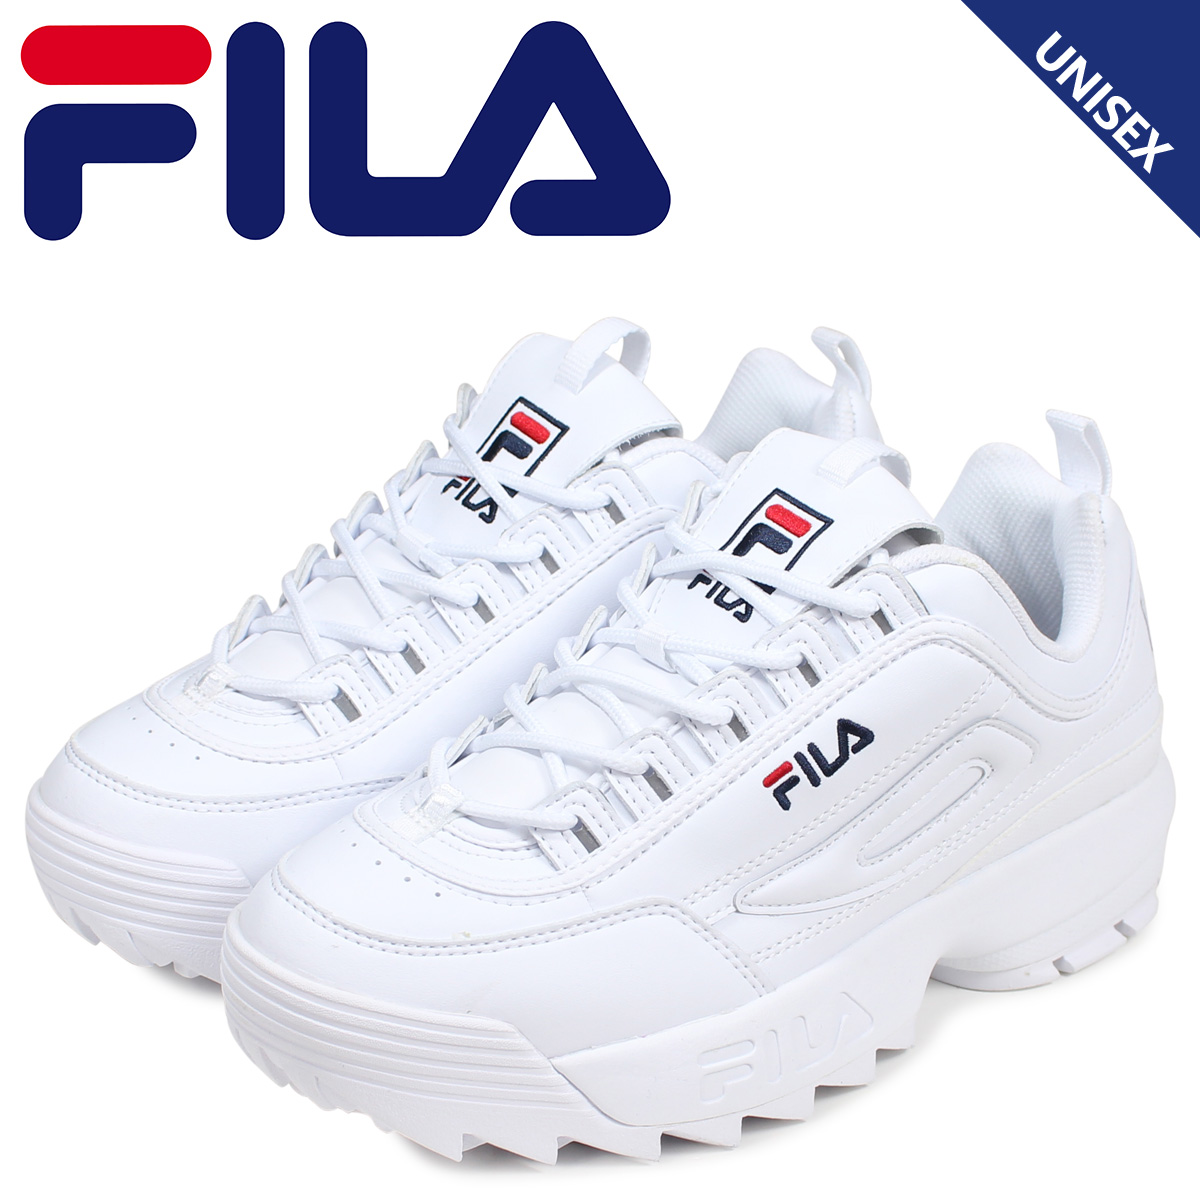 Fila FILA ディスラプター 2 sneakers men gap Dis DISRUPTOR 2 white white FS1HTB1071X